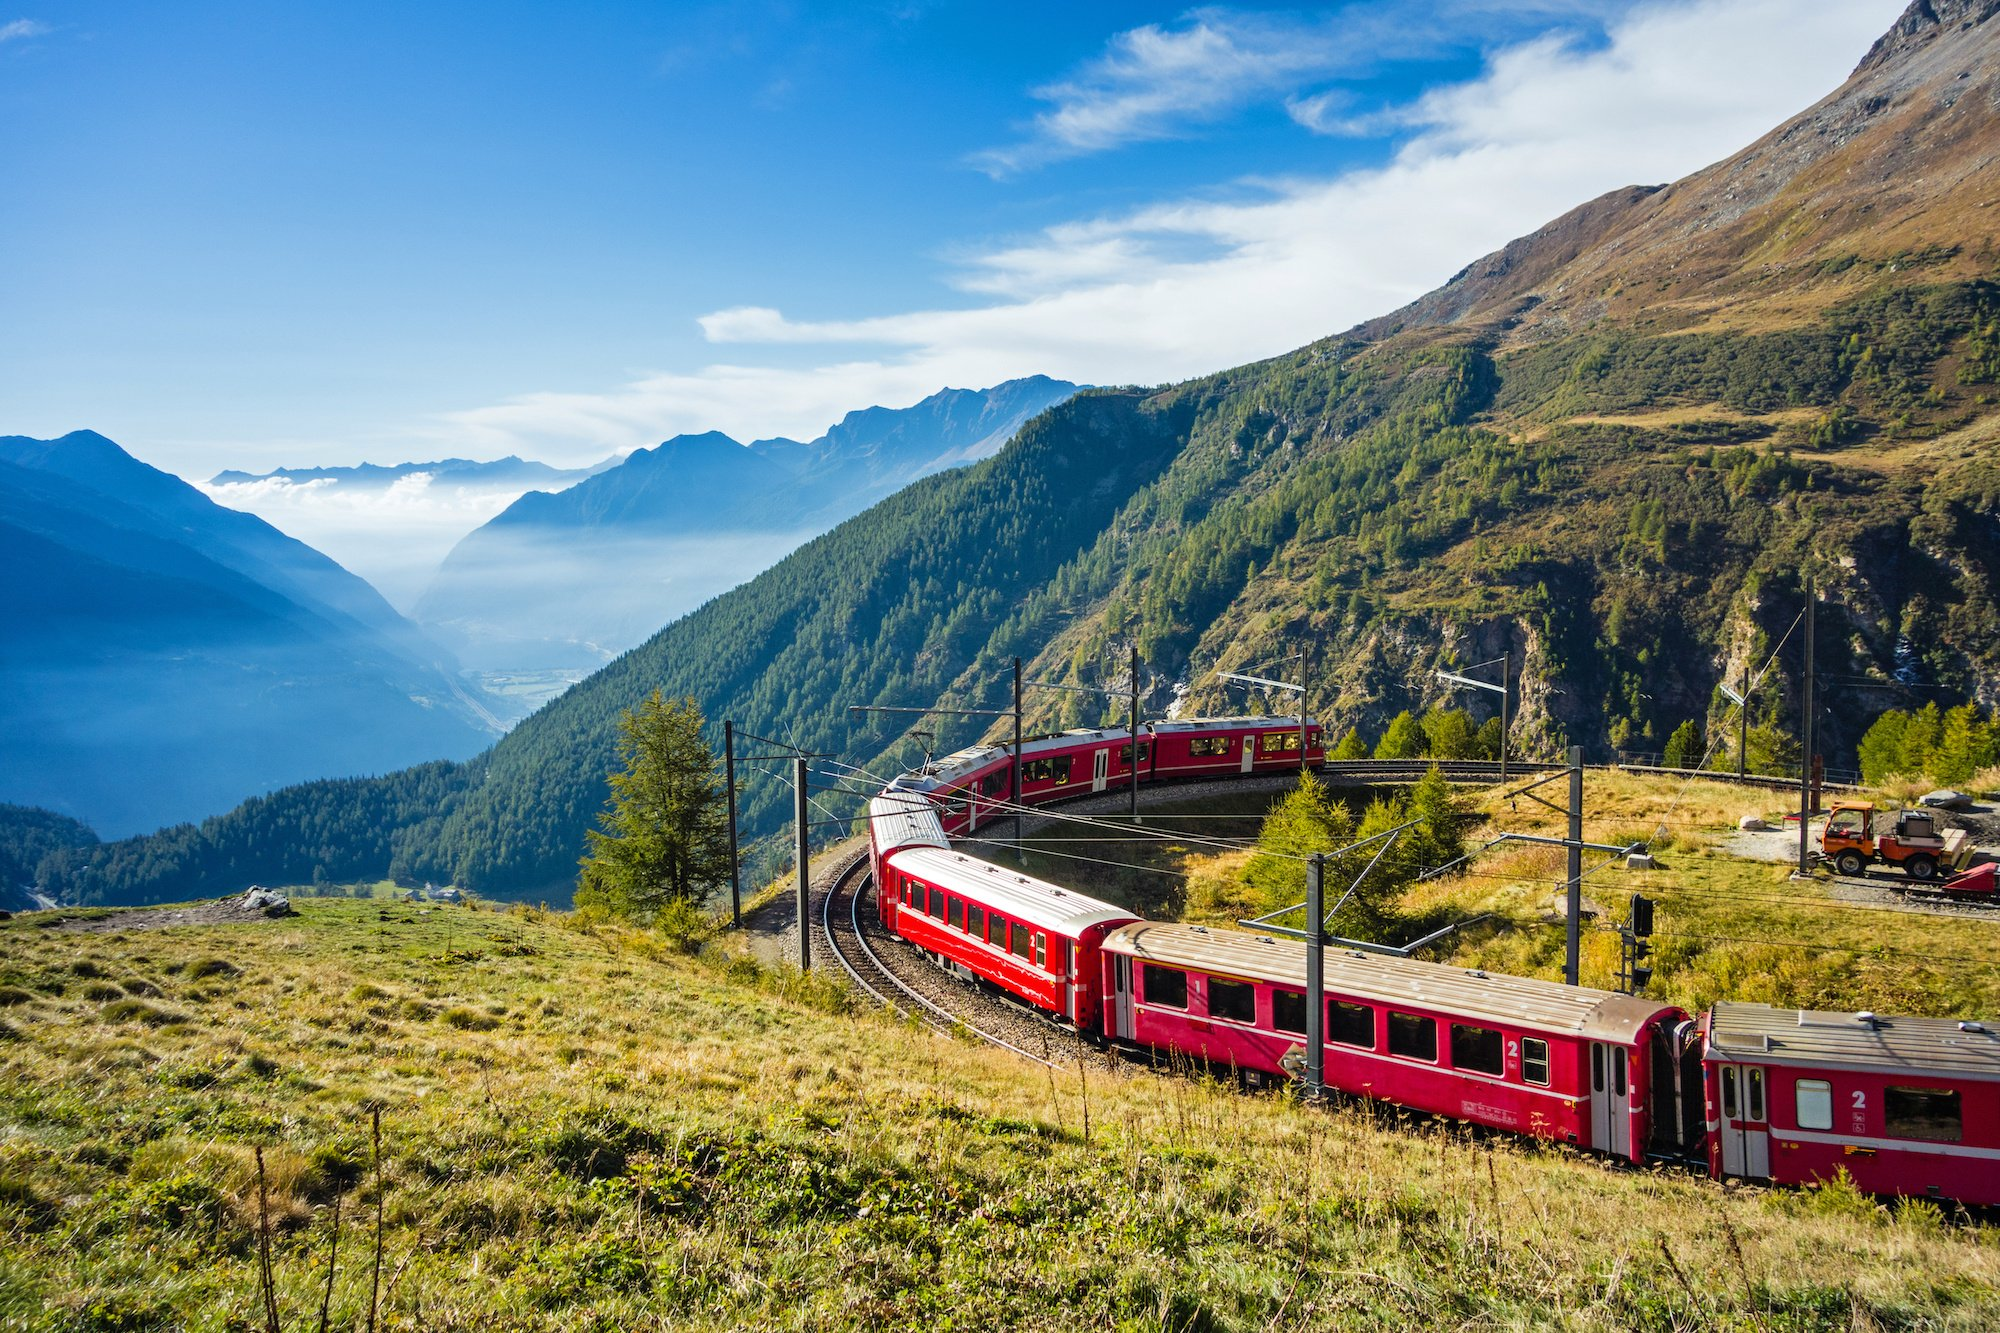 Traveling by train is more eco-friendly